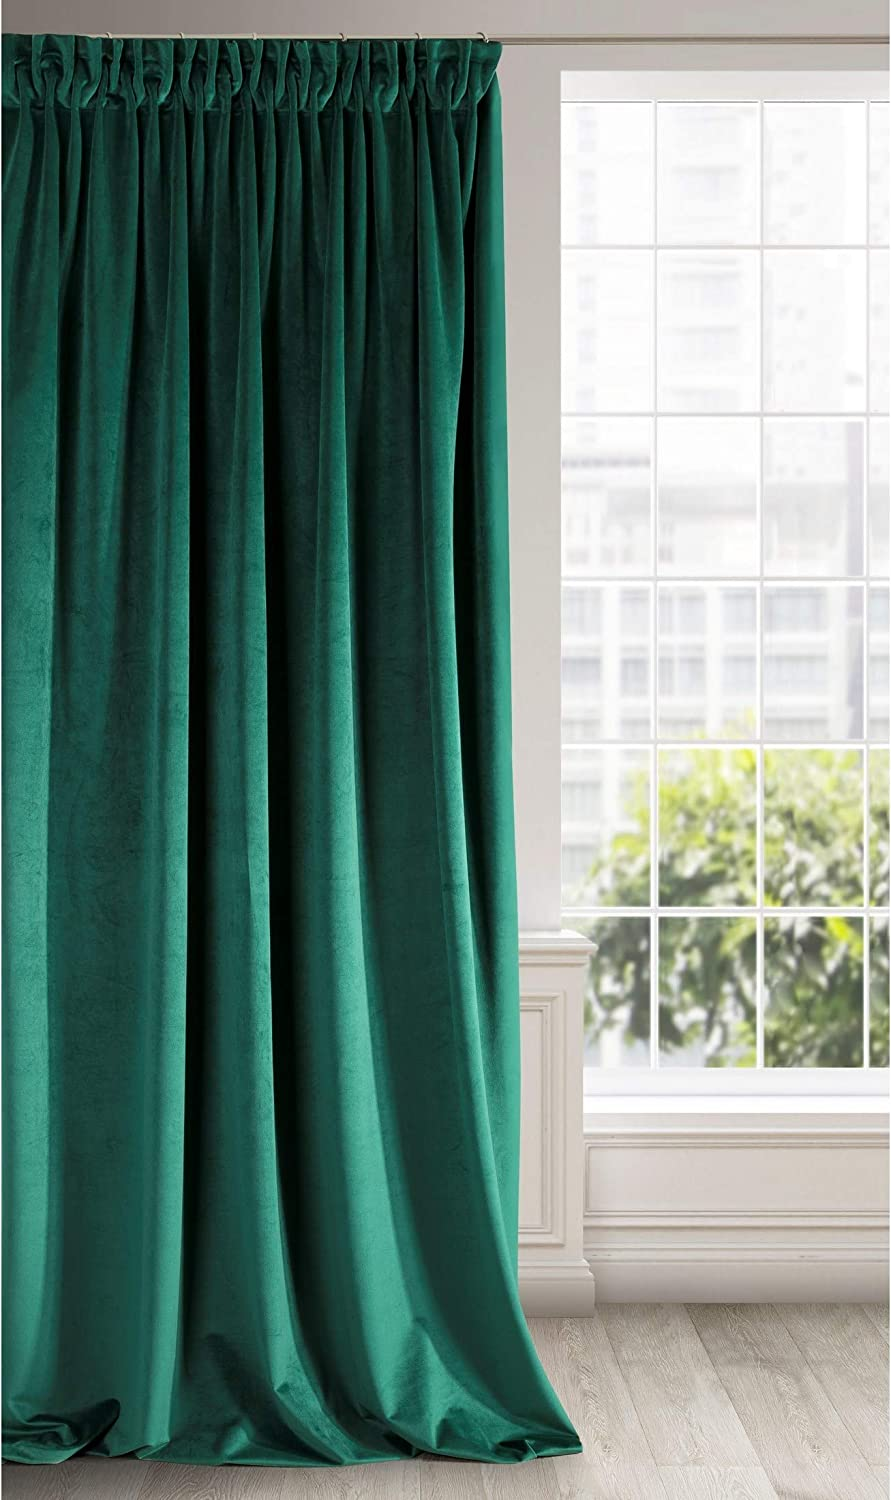 Eurofirany Soft Velvet Curtain Plain with Ruffle Tape Ribbon-1 Unit Thick Thermo Opaque Fluffy Modern Classic Glamour Elegant Living Room Bedroom, Dark Green, 55